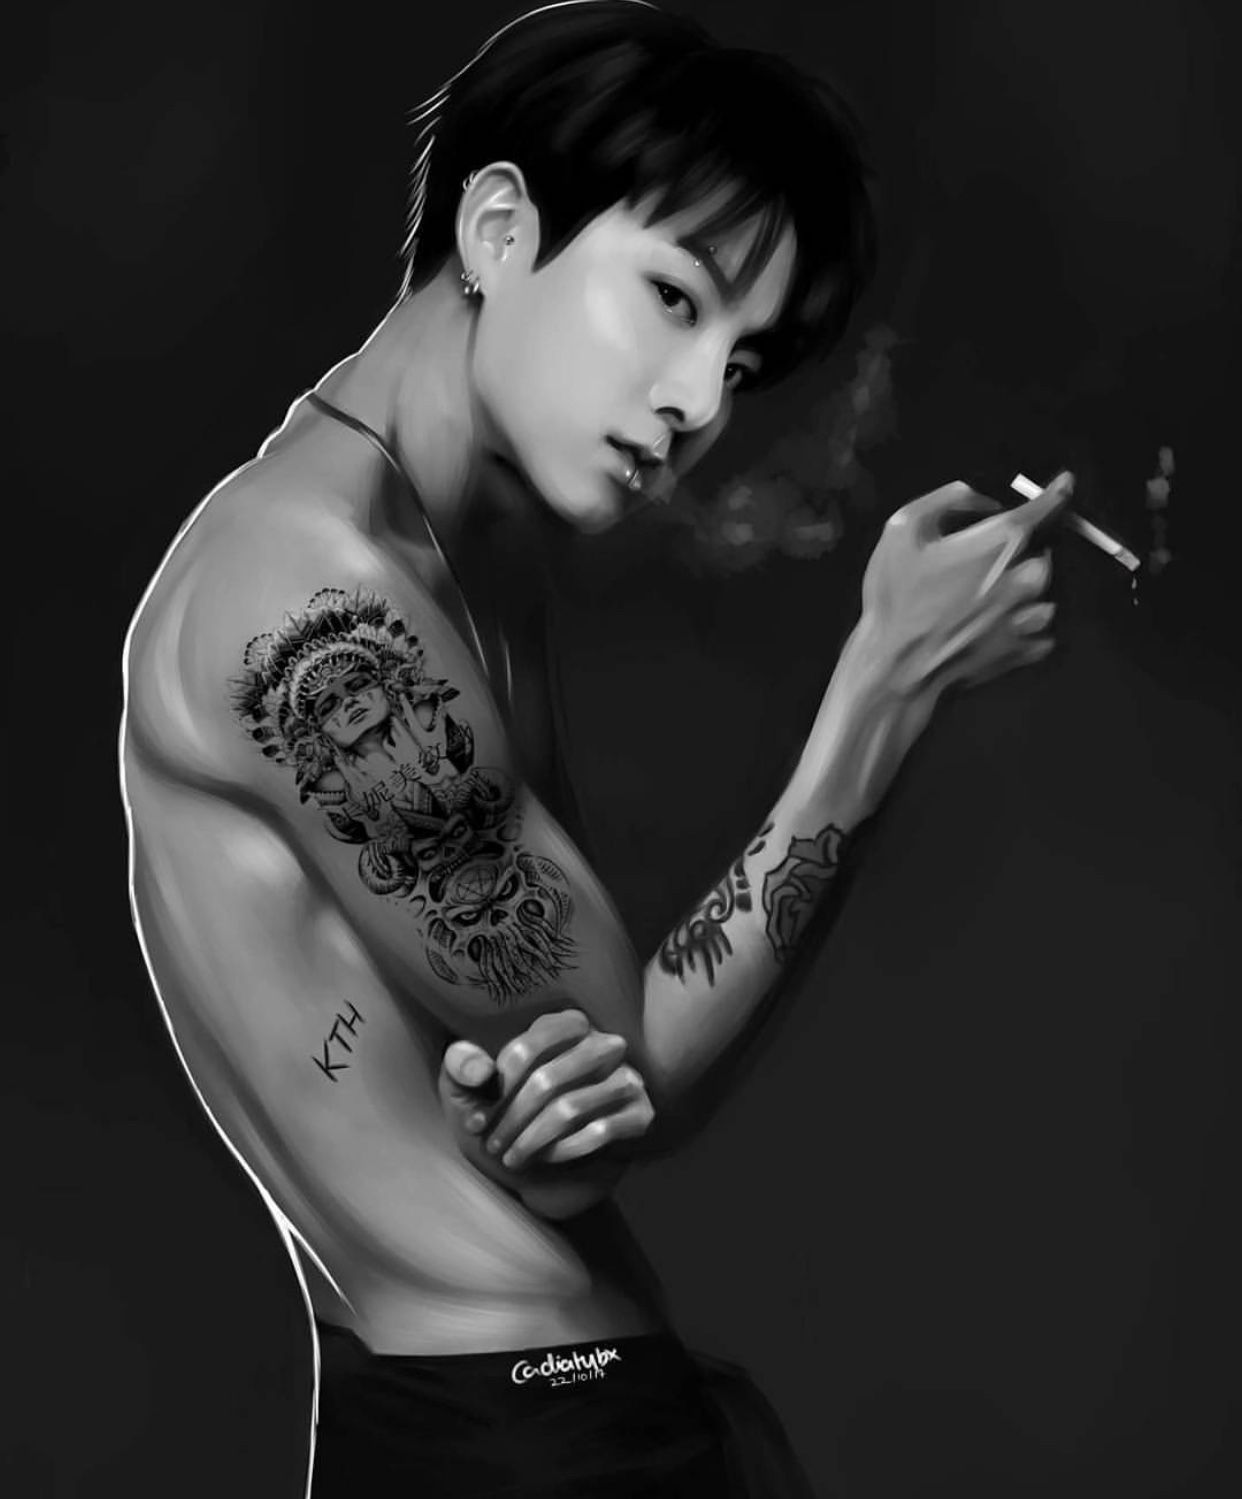 Pin By ოἶղ ʂօօ On Fan Art Bts Tattoos Bts Fanart Bts